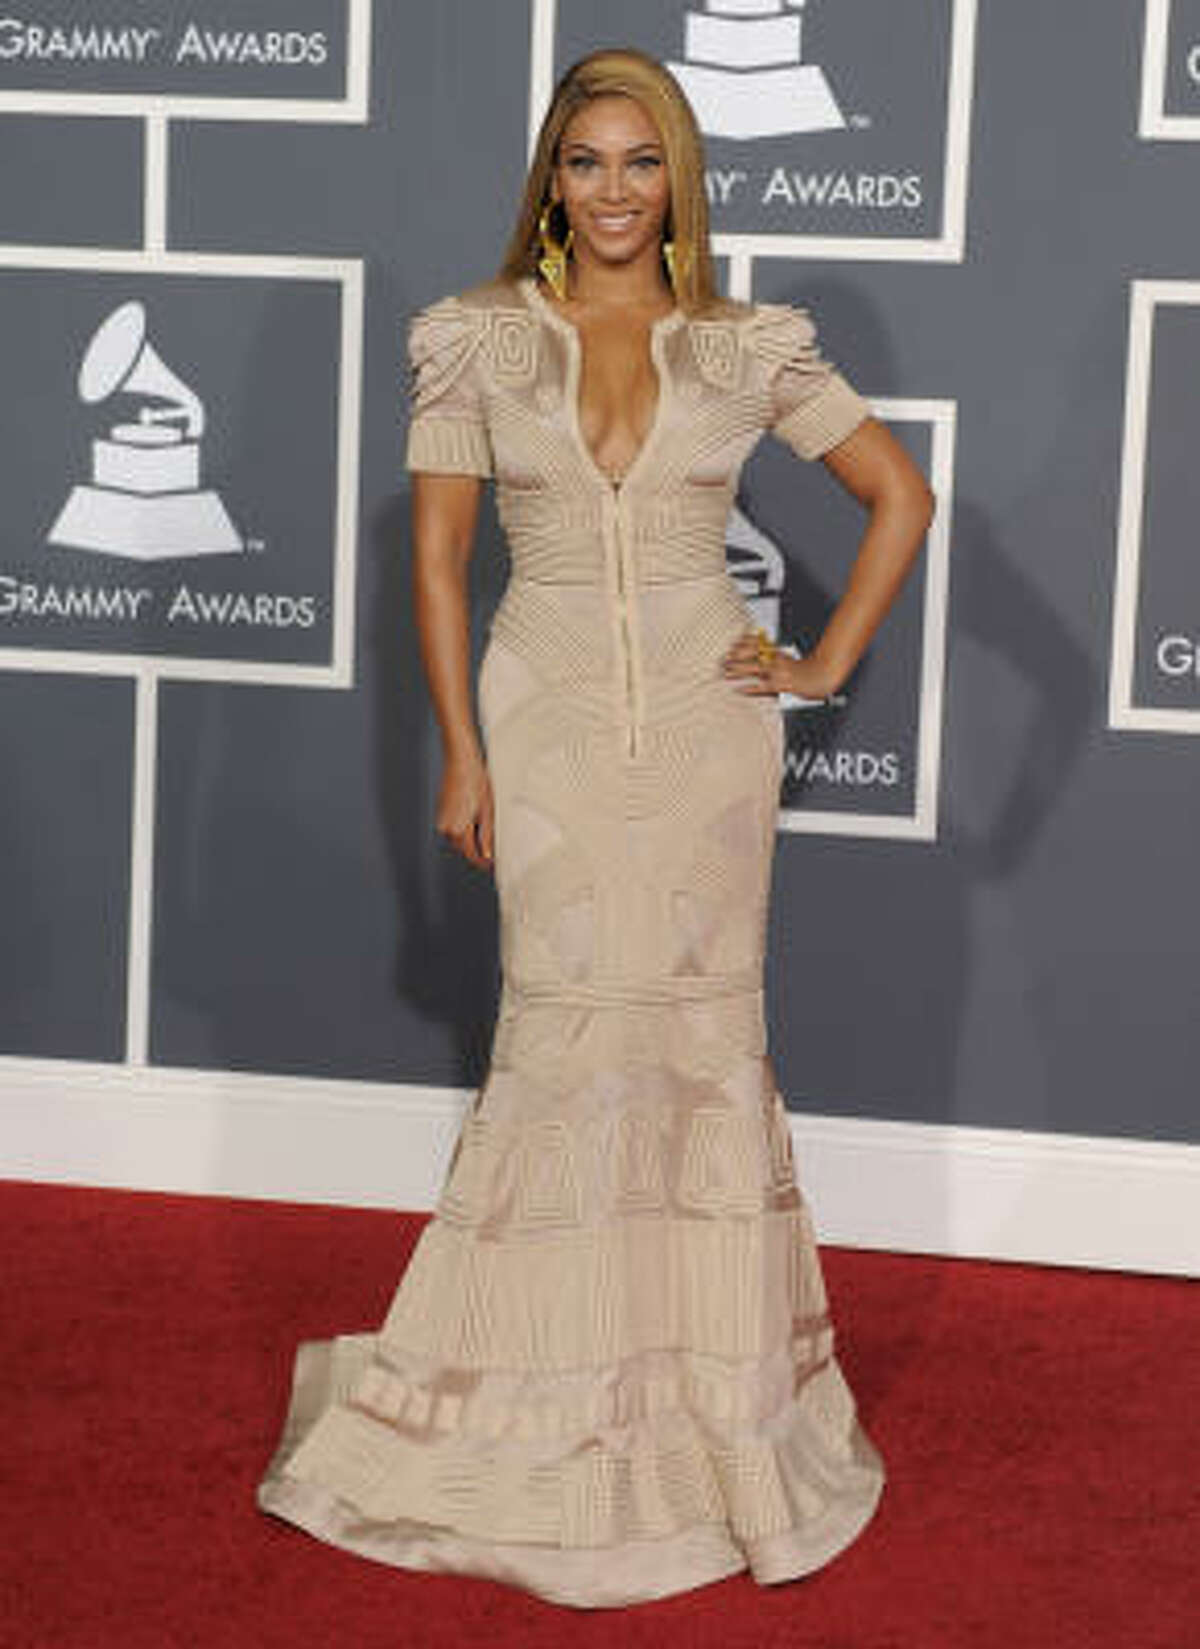 Beyonce looks stunning as usual. Read more about Grammy fashion here.